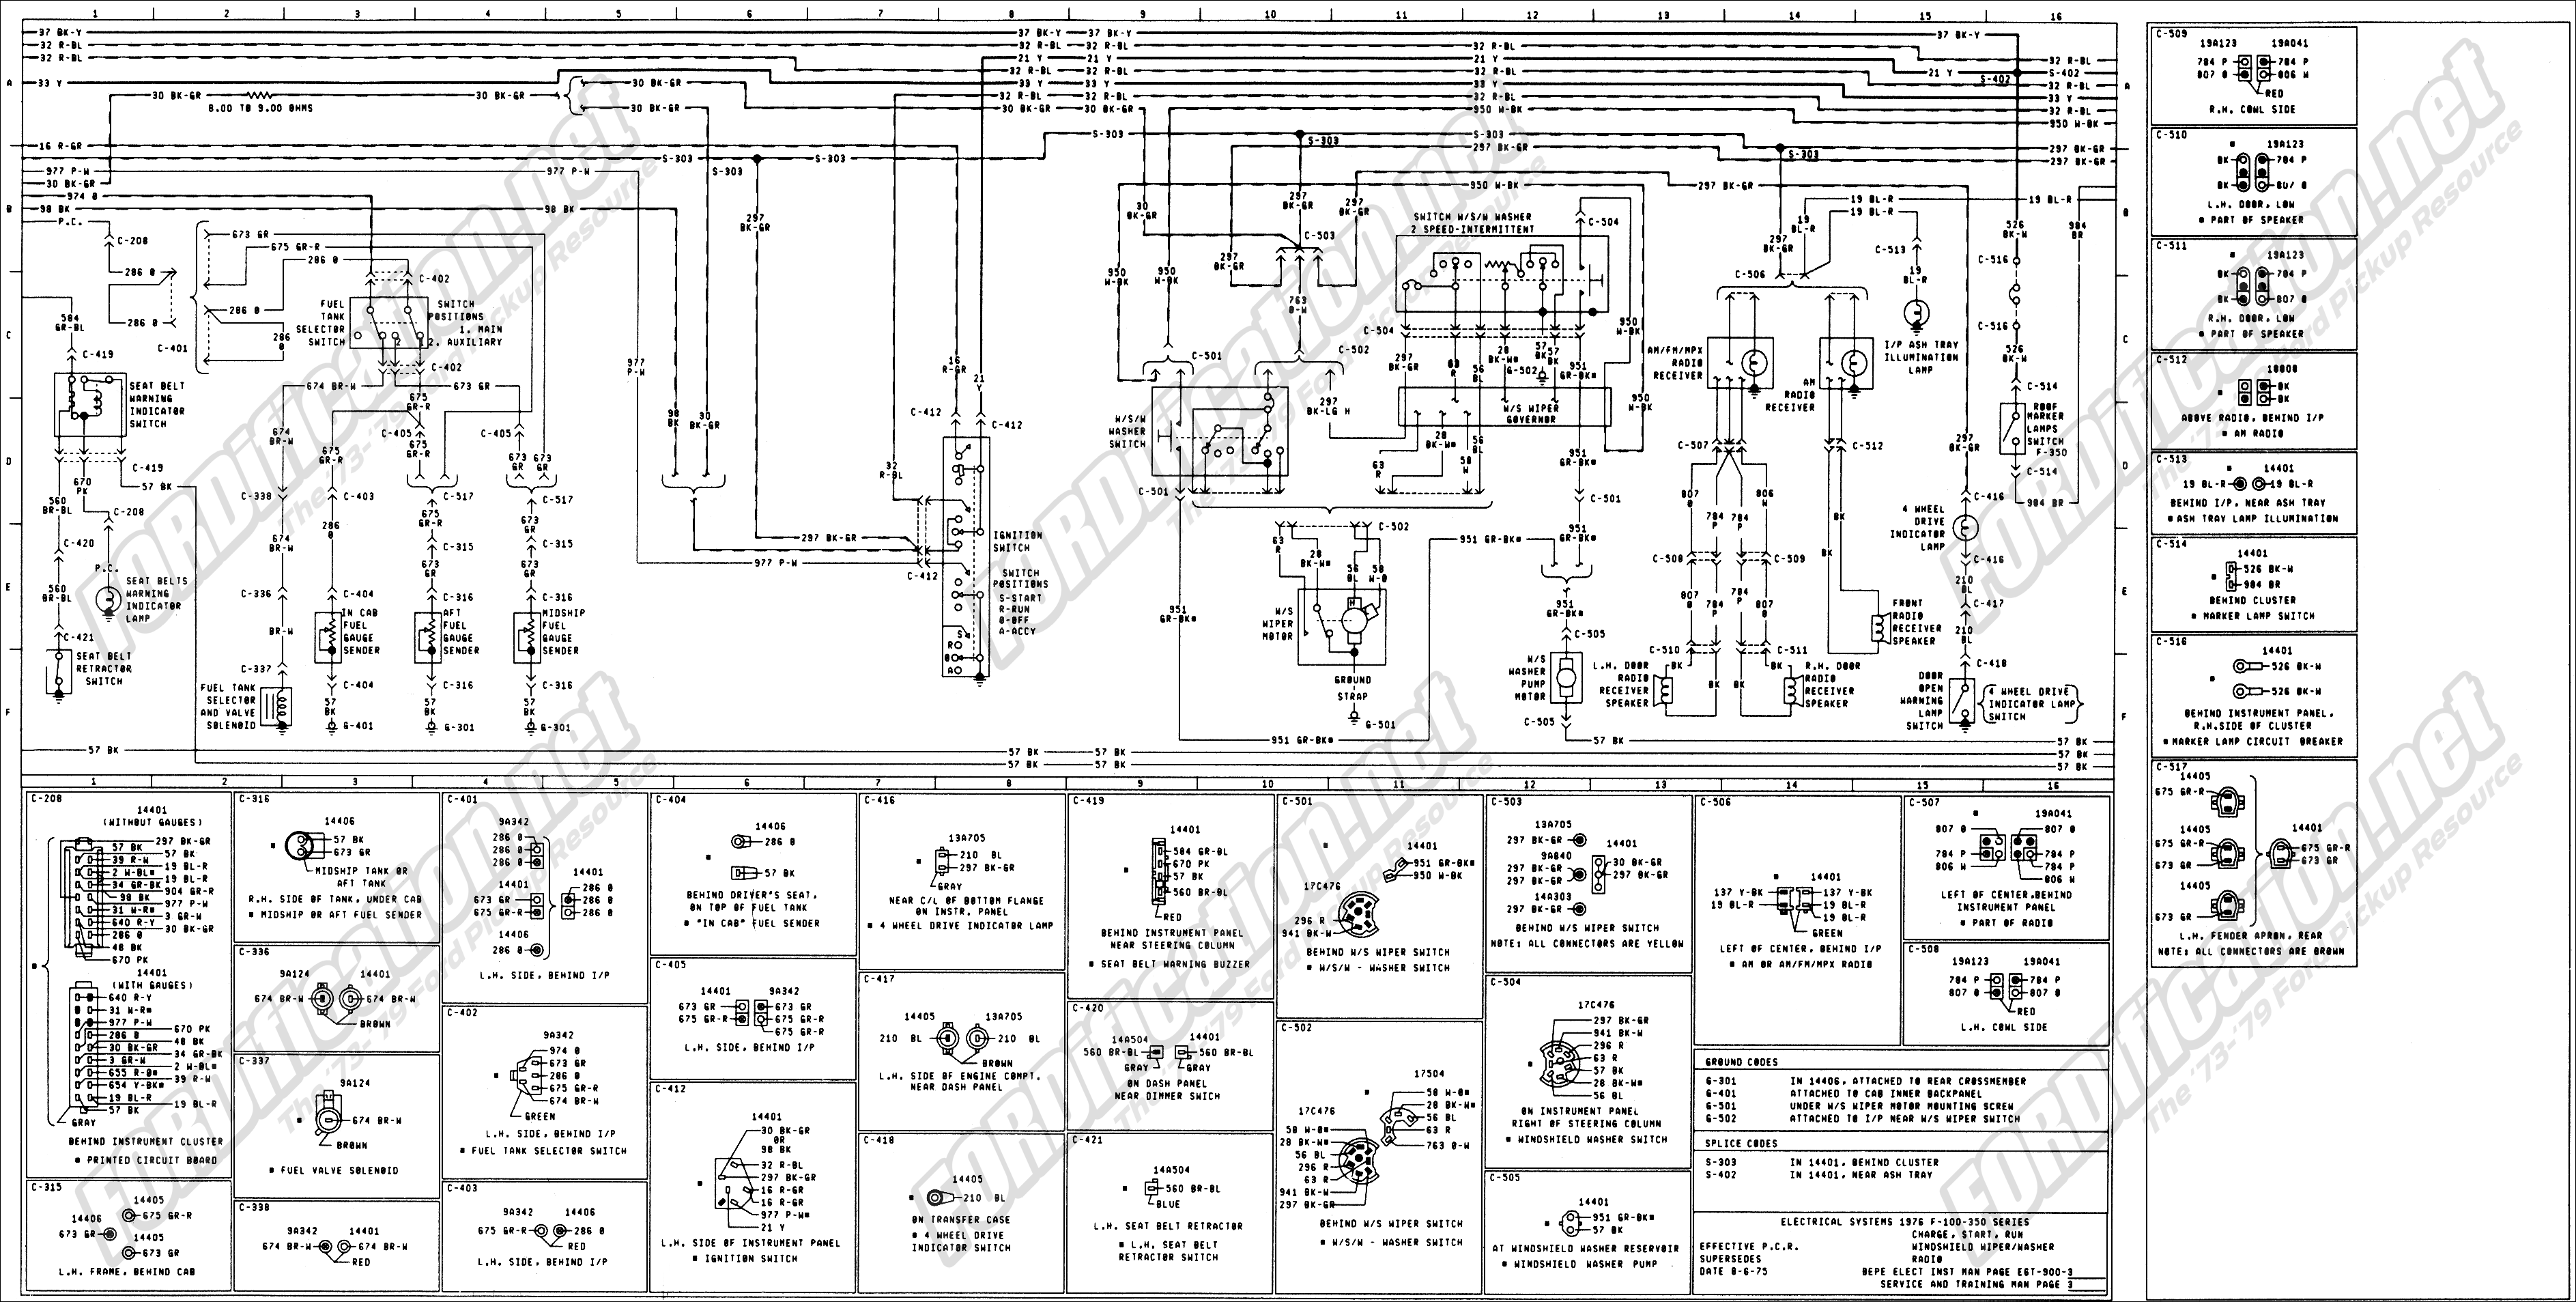 wiring_76master_3of9 1973 1979 ford truck wiring diagrams & schematics fordification net Ford F-150 Trailer Wiring Diagram at aneh.co